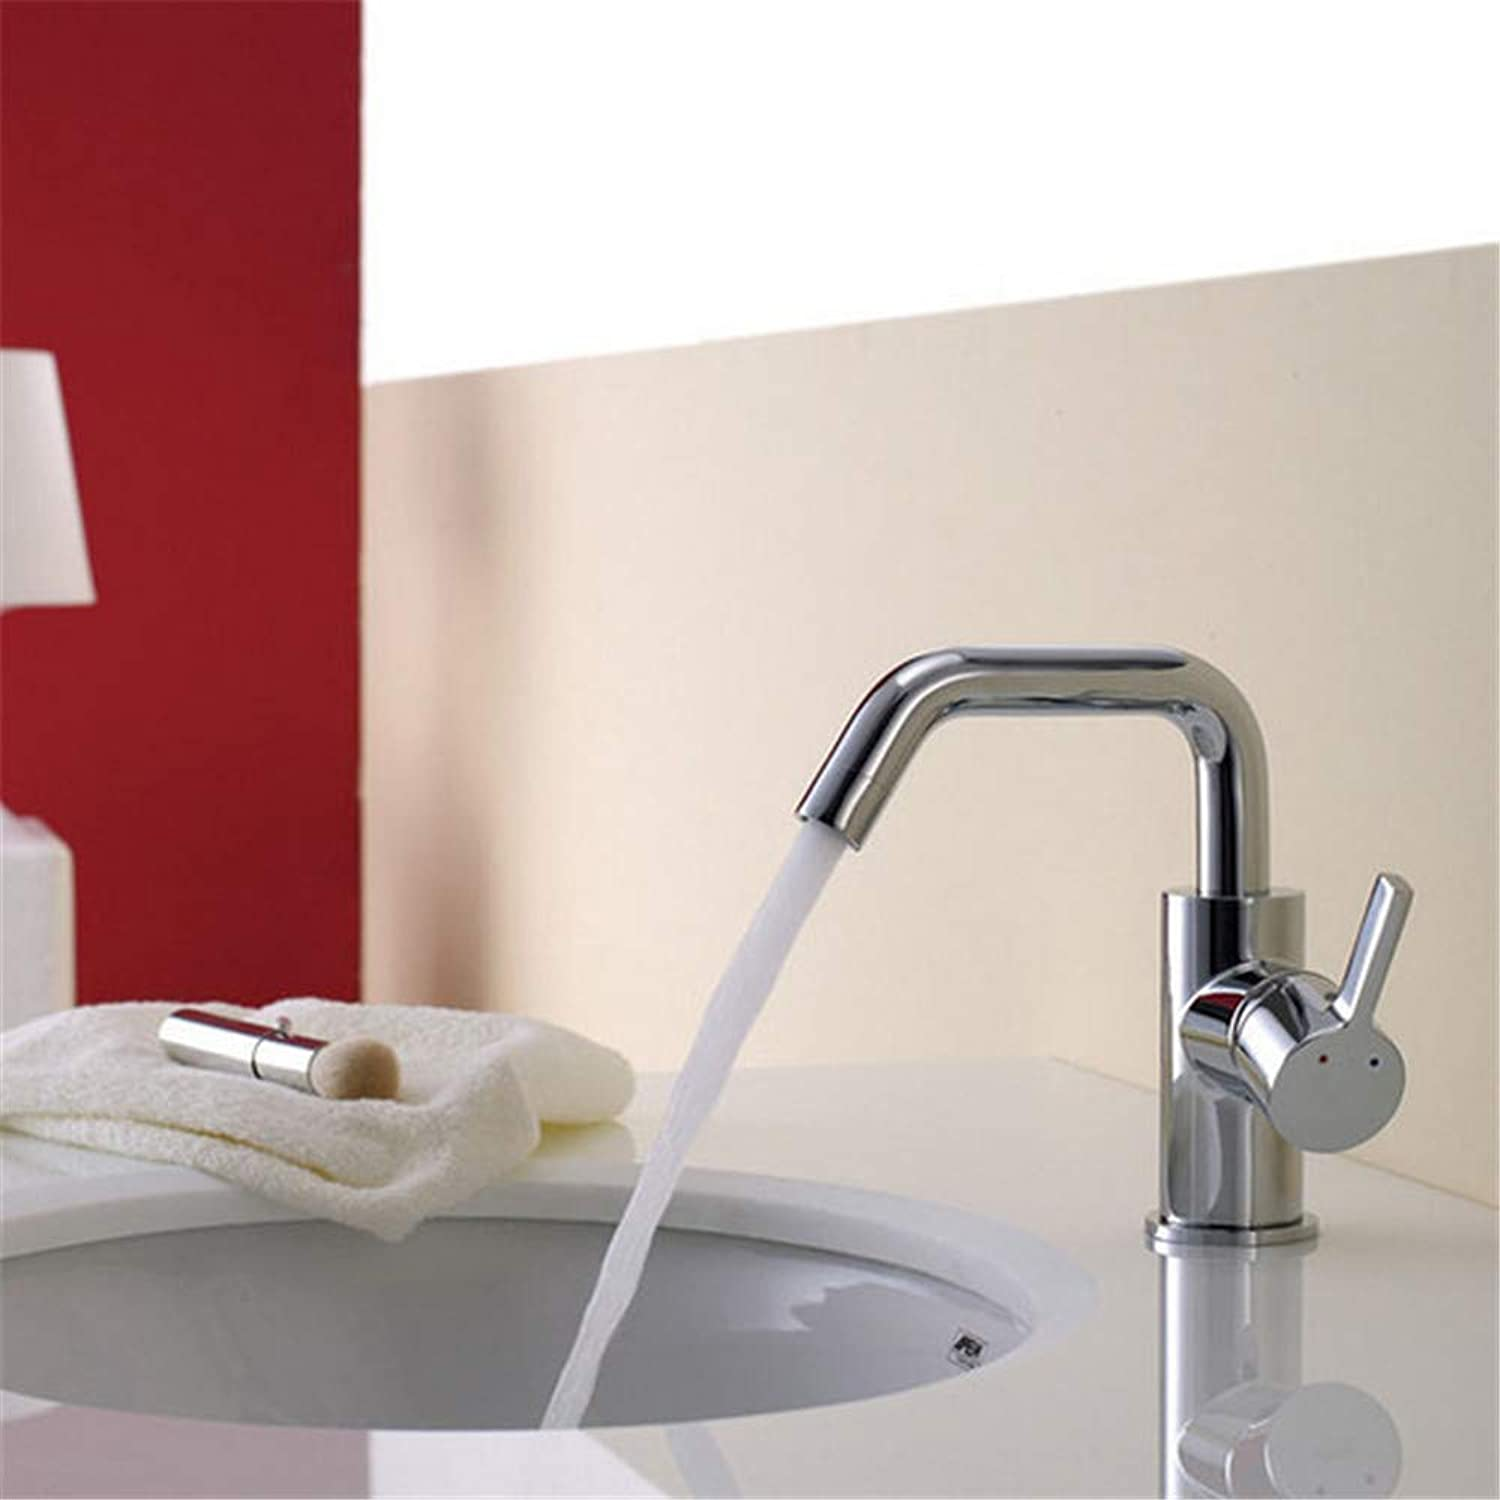 Sink Chrome-Plated Brass Mixer with Single Handle Hot Cold Bathroom Basin Sink Mixer Taps Sanitary Ware Basin Faucet